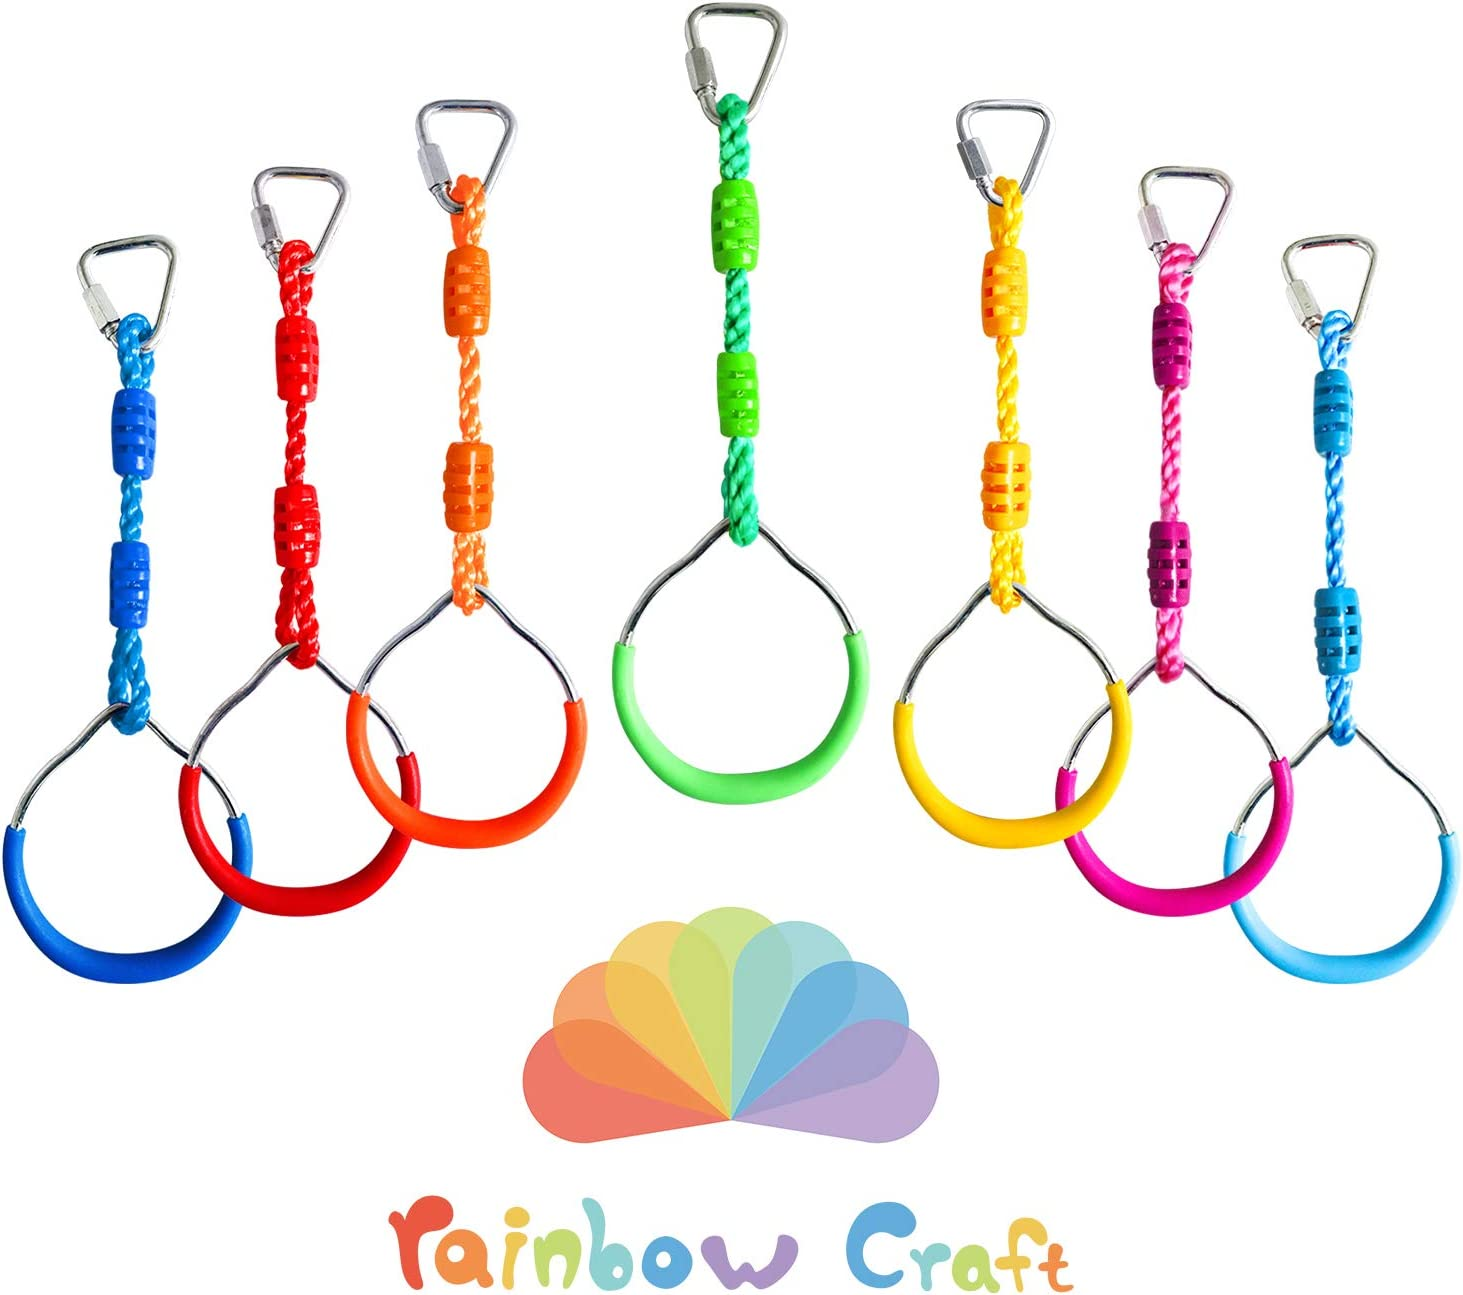 Rainbow Craft Colorful Ninjaline Rings - Gymnastic Rings, Ninja Rings, Swing Bar Rings, Monkey Rings for Backyard Ninja Obstacle Accessories - 7pcs Pack: Toys & Games